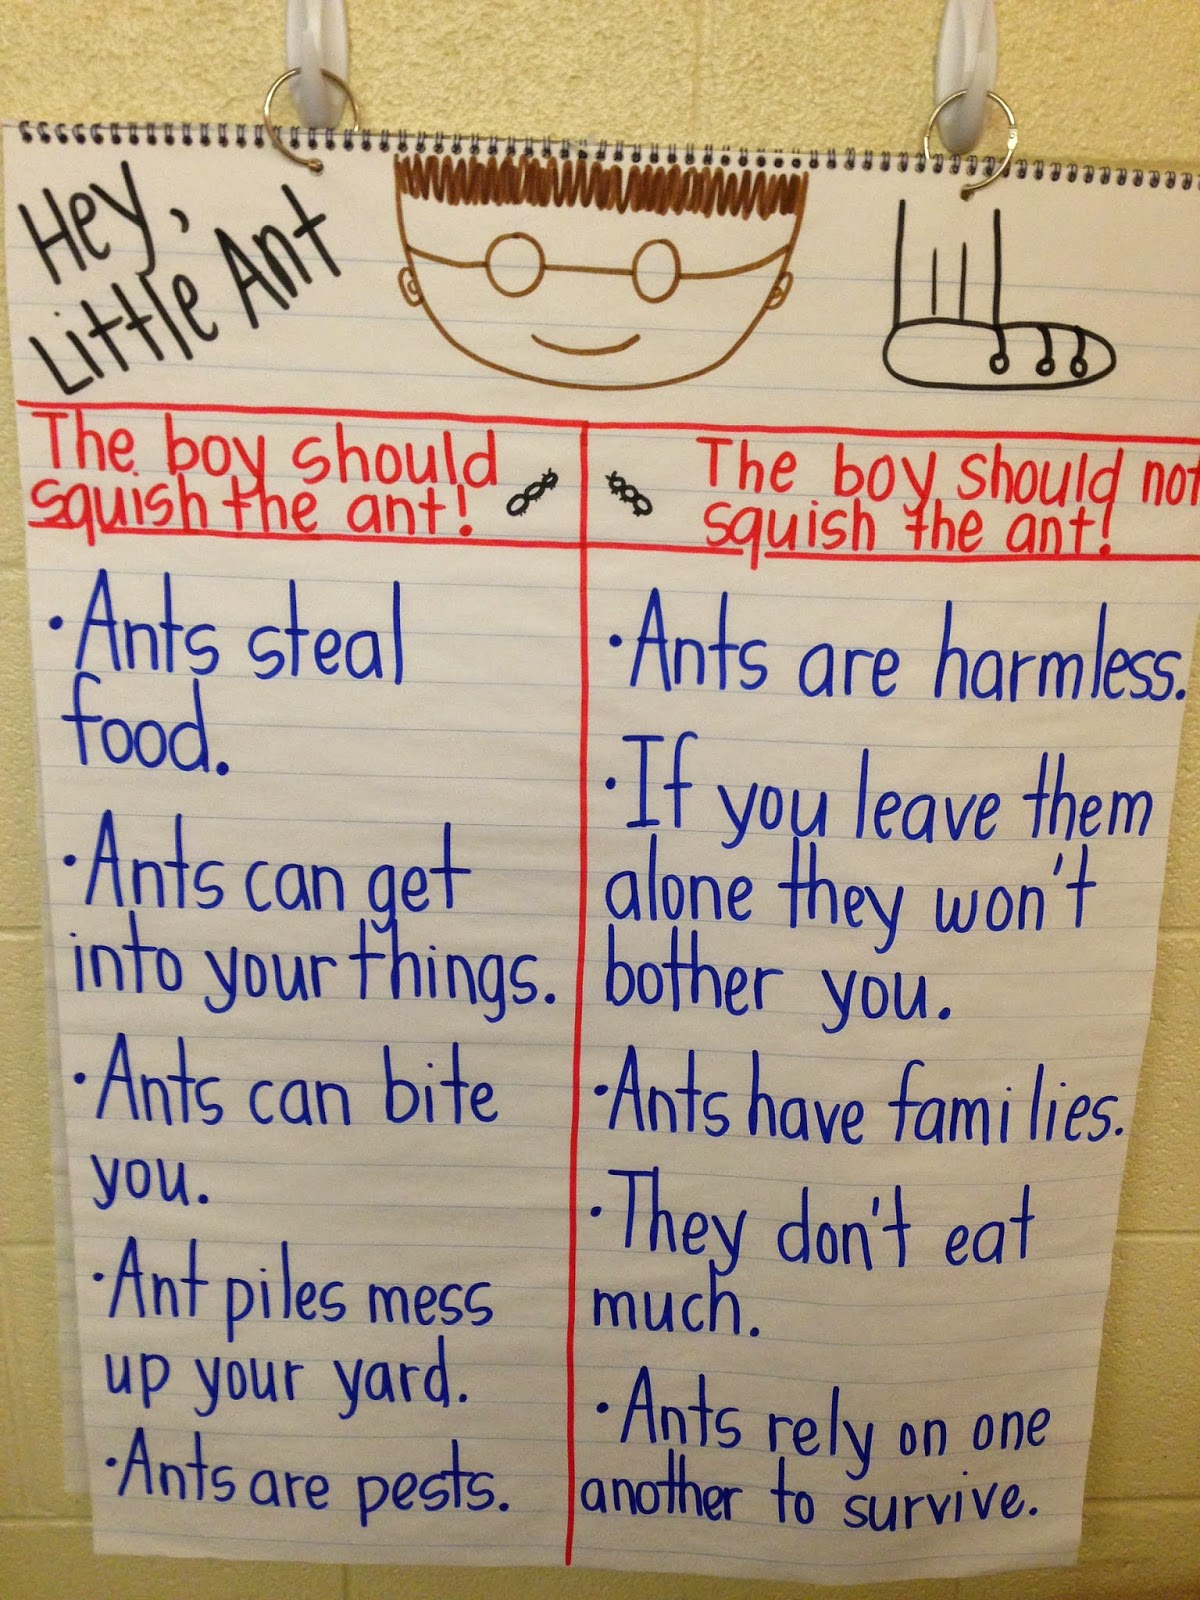 We began with hey little ant after reading we came up with reasons to support both of the opinions shown in the anchor chart below